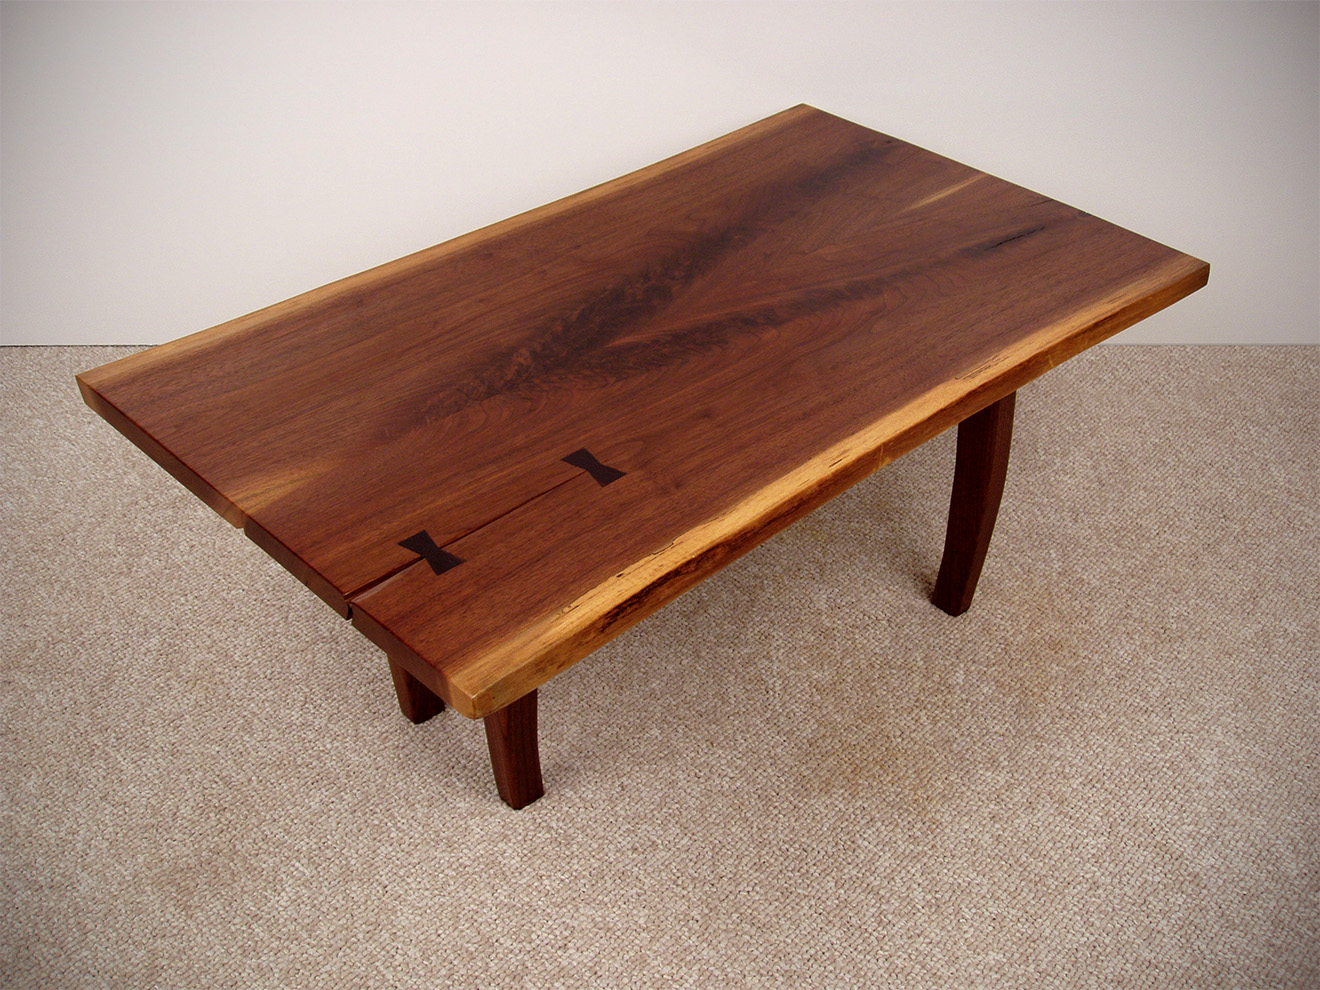 "Walnut Coffee Table Book matched Black Walnut flitches with Ebony inlaid butterflies. The base uses mortise and tenon, lap joint construction and hand-carved tapered legs. 16""h × 38""w × 20""d"